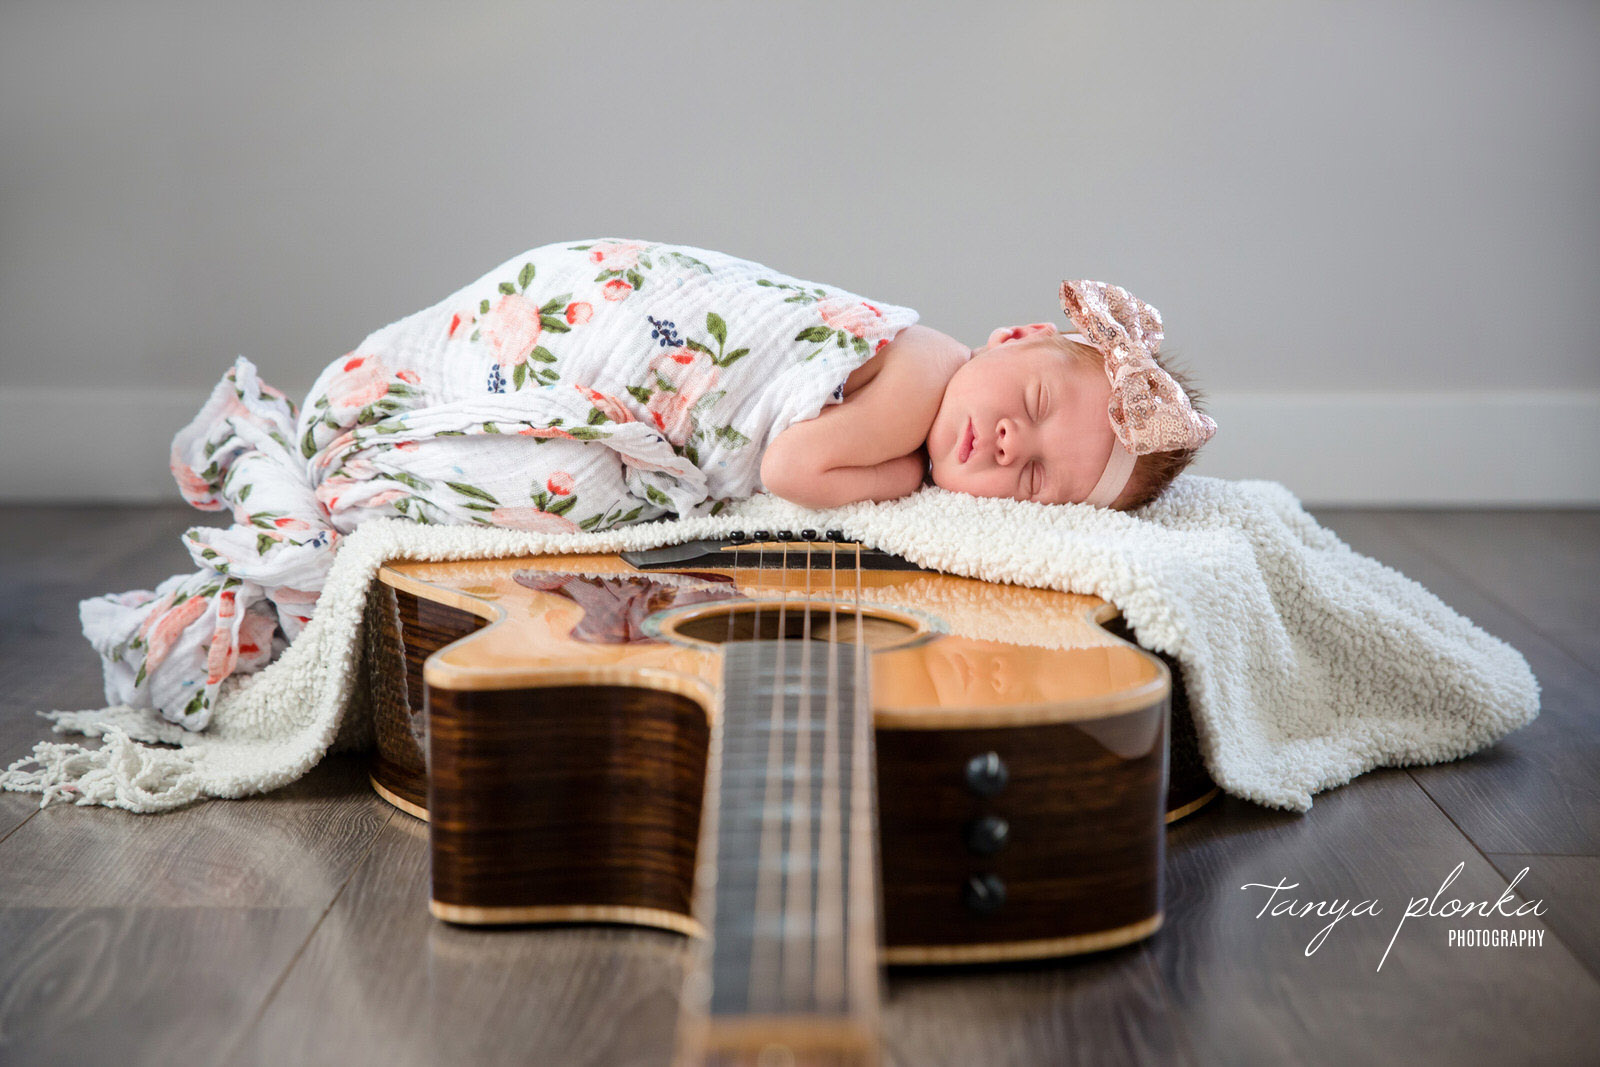 Baby sleeping on guitar